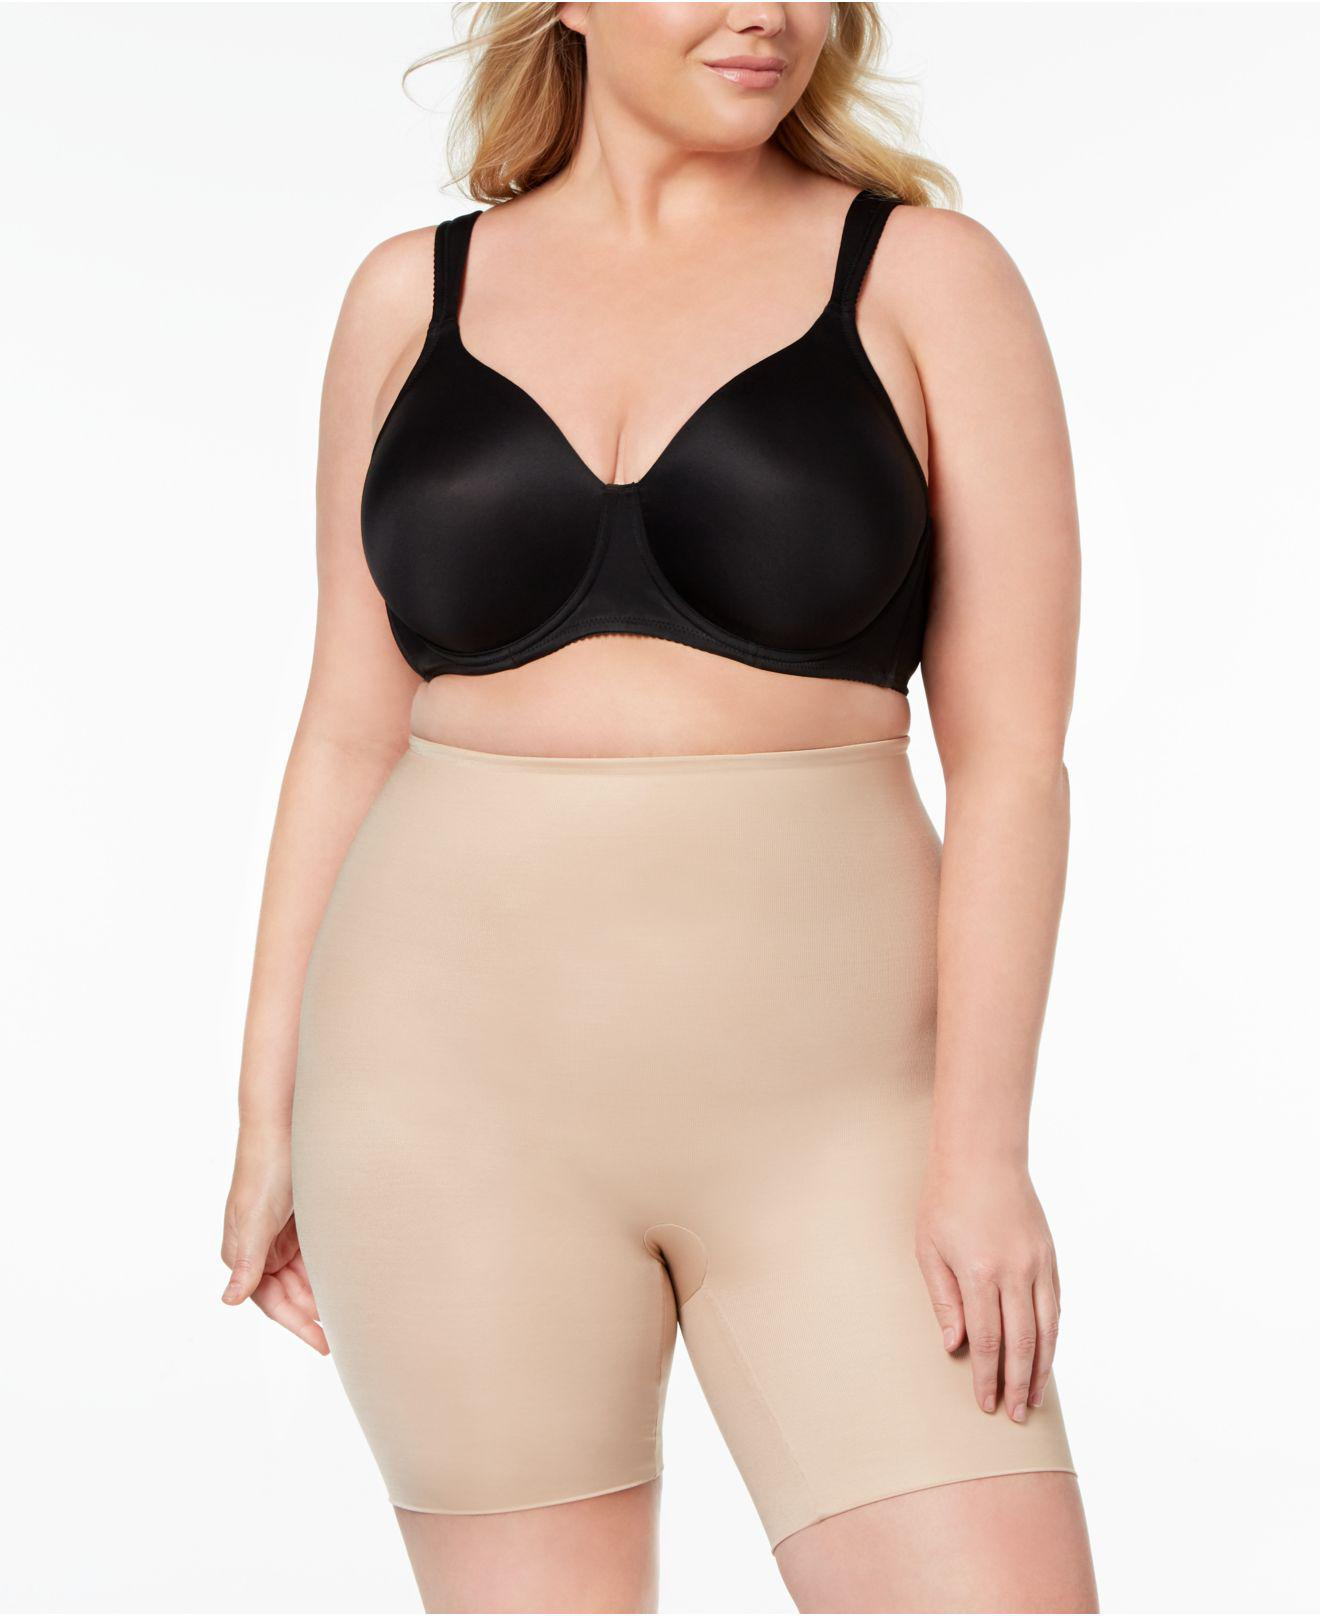 b887f275e4 Lyst - Spanx Plus Size Firm-control Double-layered Thigh Slimmer 10131p in  Natural